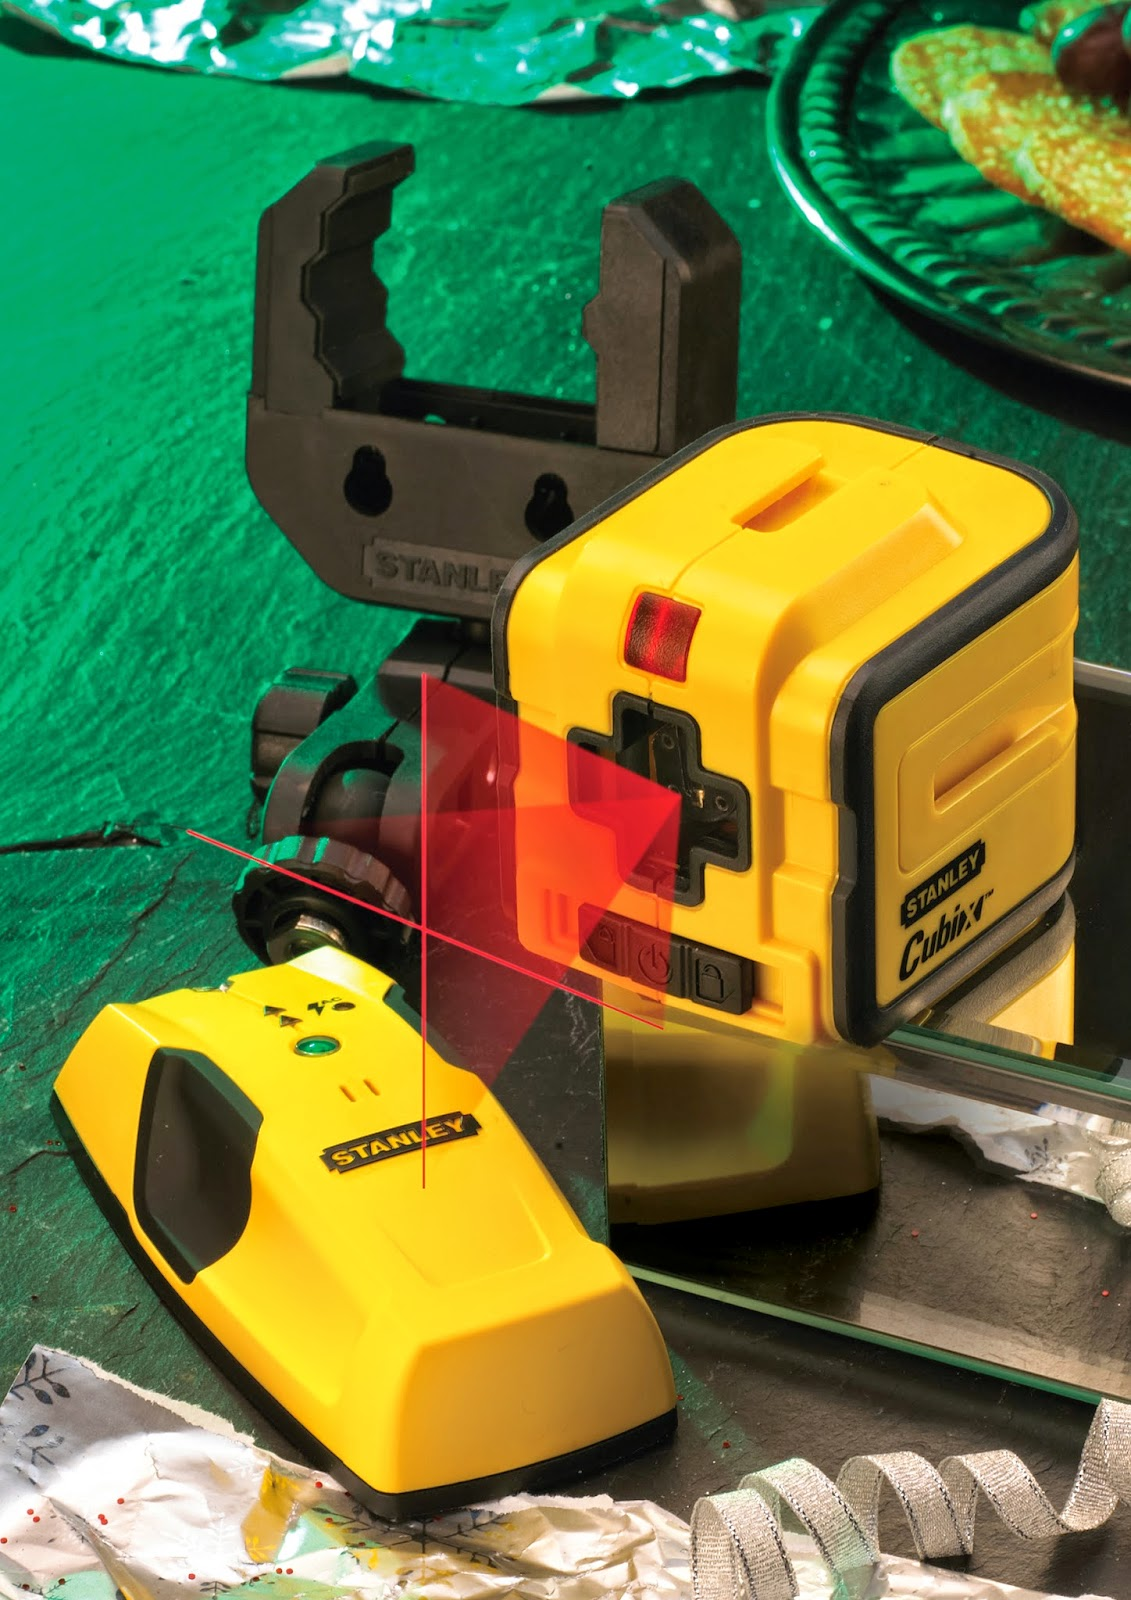 http://www.beesleyandfildes.co.uk/stanley-cube-cross-line-laser-plus-free-stud-wire-and-pipe-detector-ref-xms14cubix/